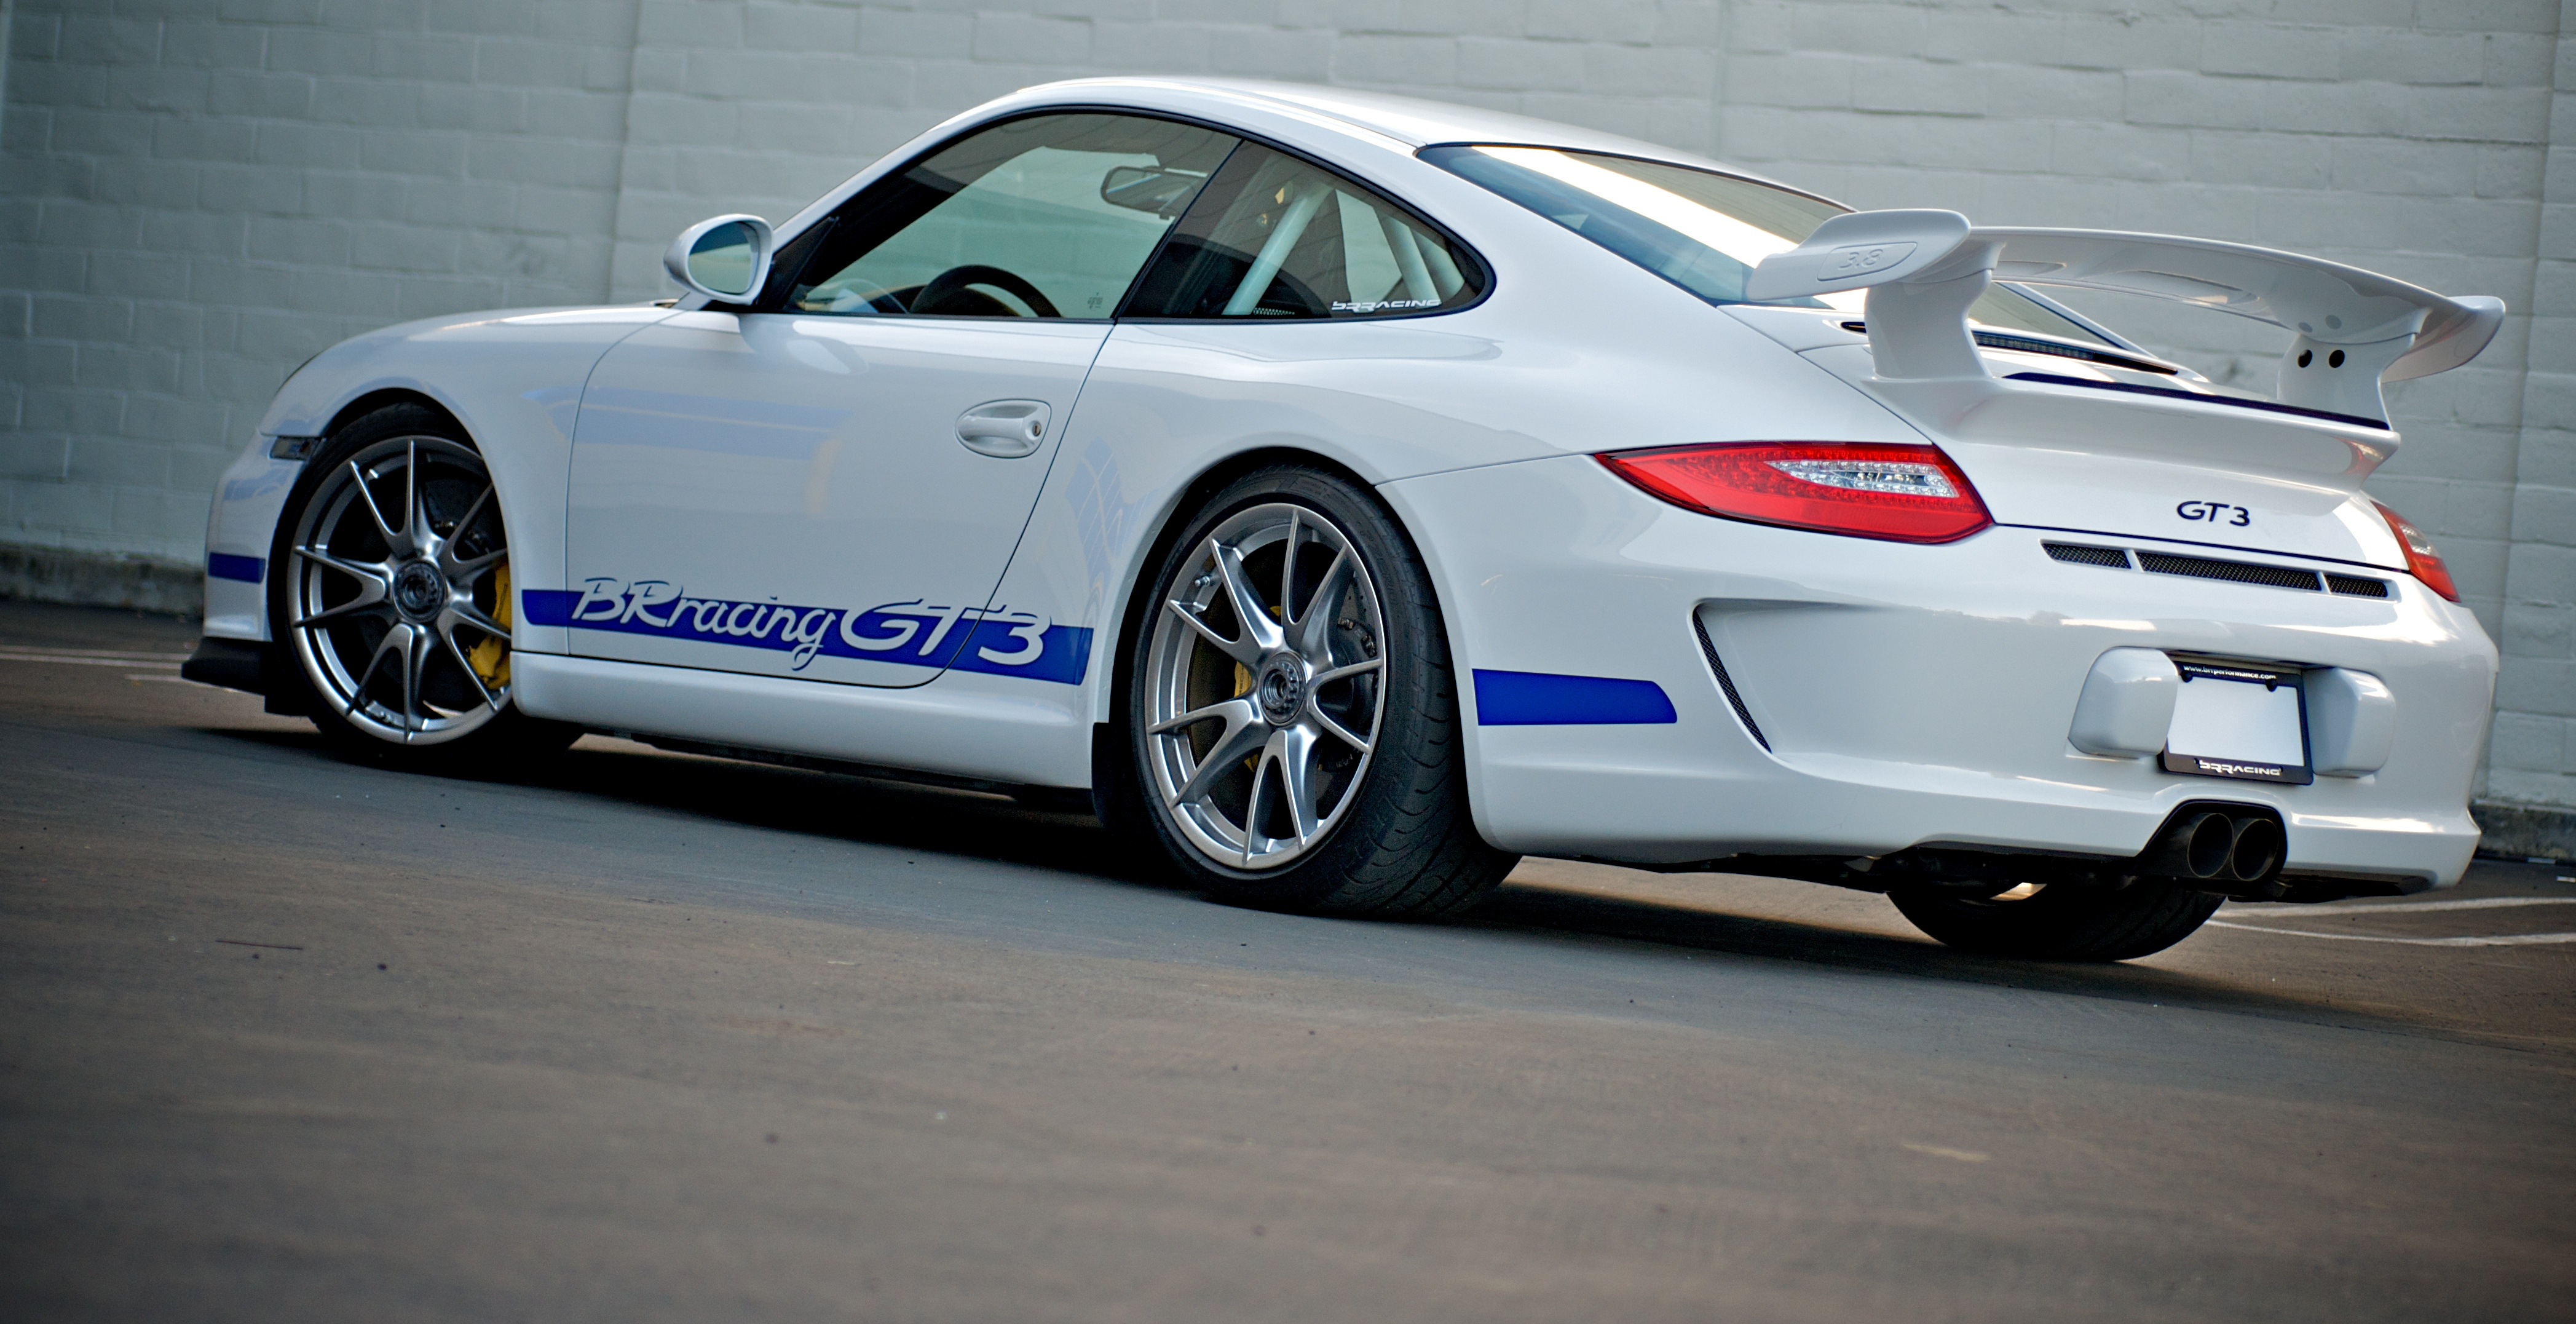 Racing Car Pictures Wallpaper File Brracing Porsche 997 Gt3 Rear Jpg Wikimedia Commons